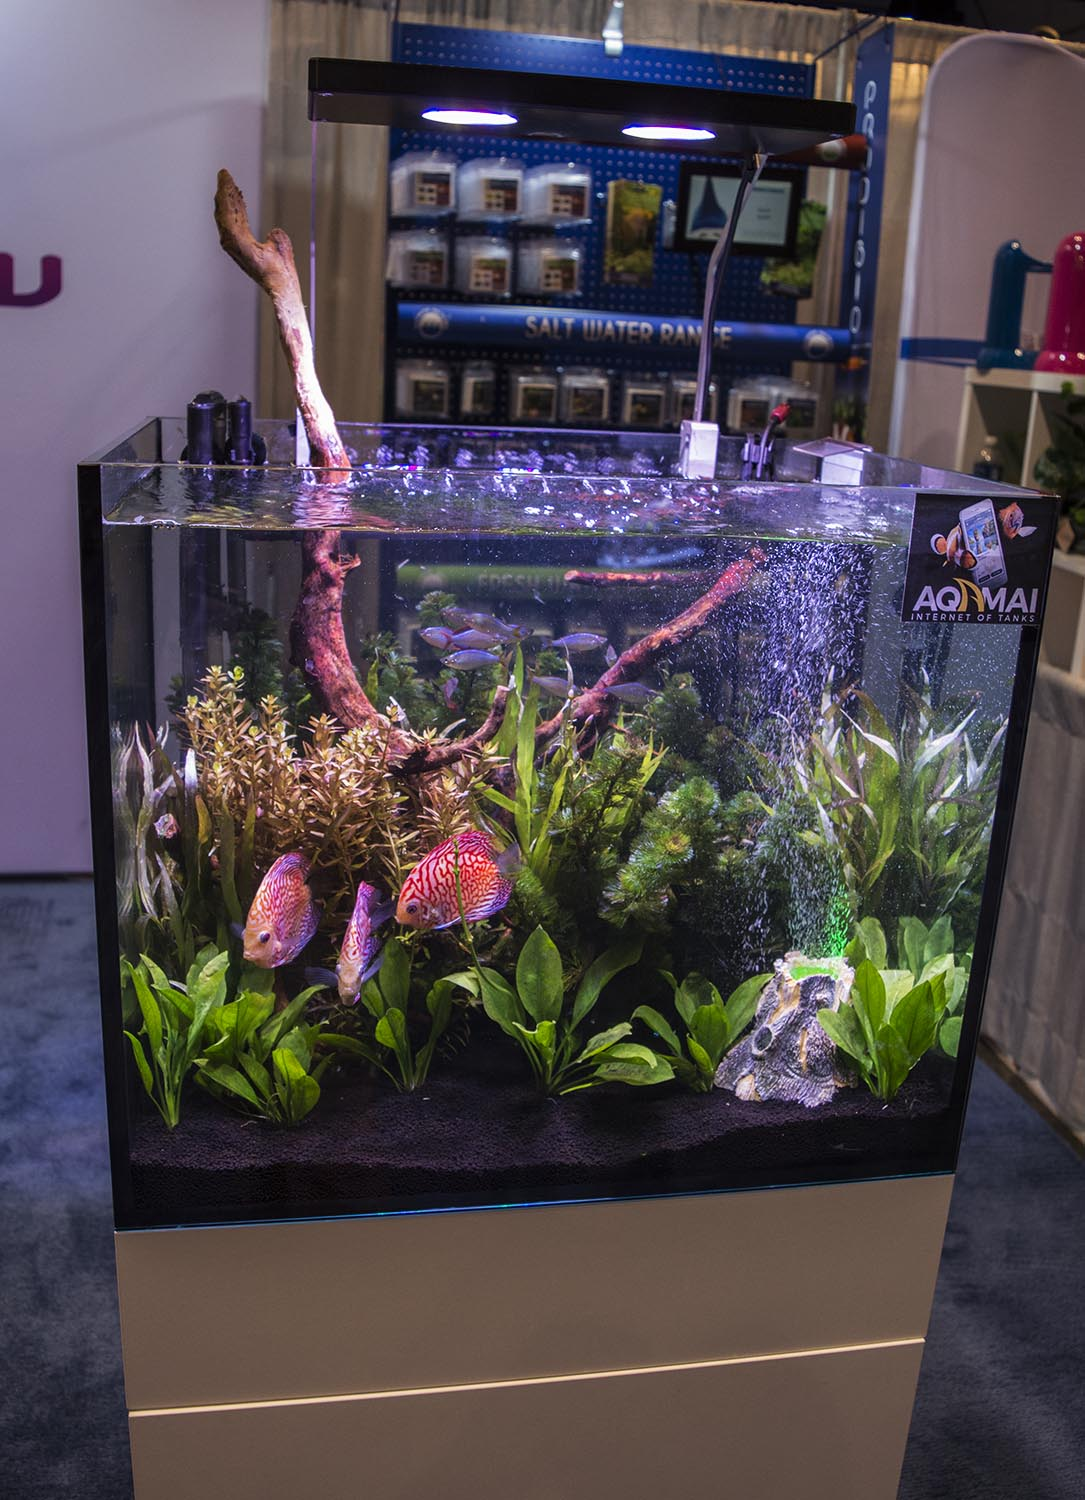 This vibrant planted discus display at the Hydor booth features their new Aqamai controllable LED